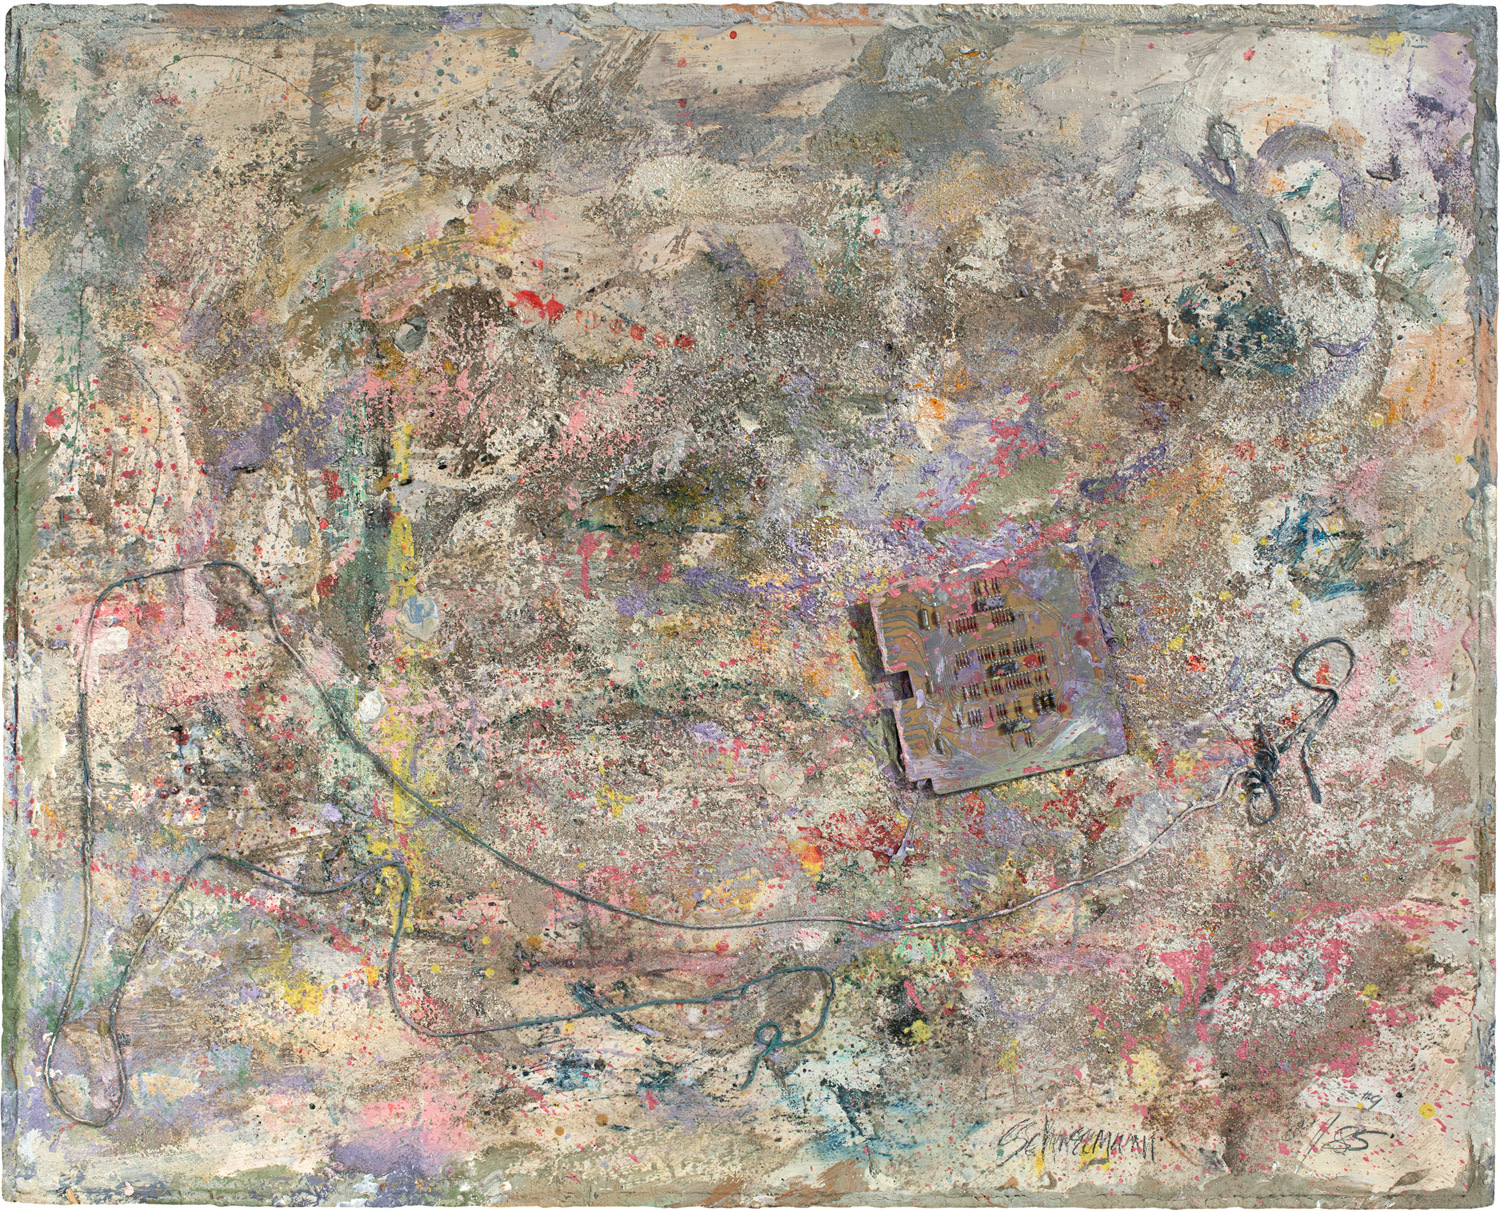 Untitled dust painting #9, 1985